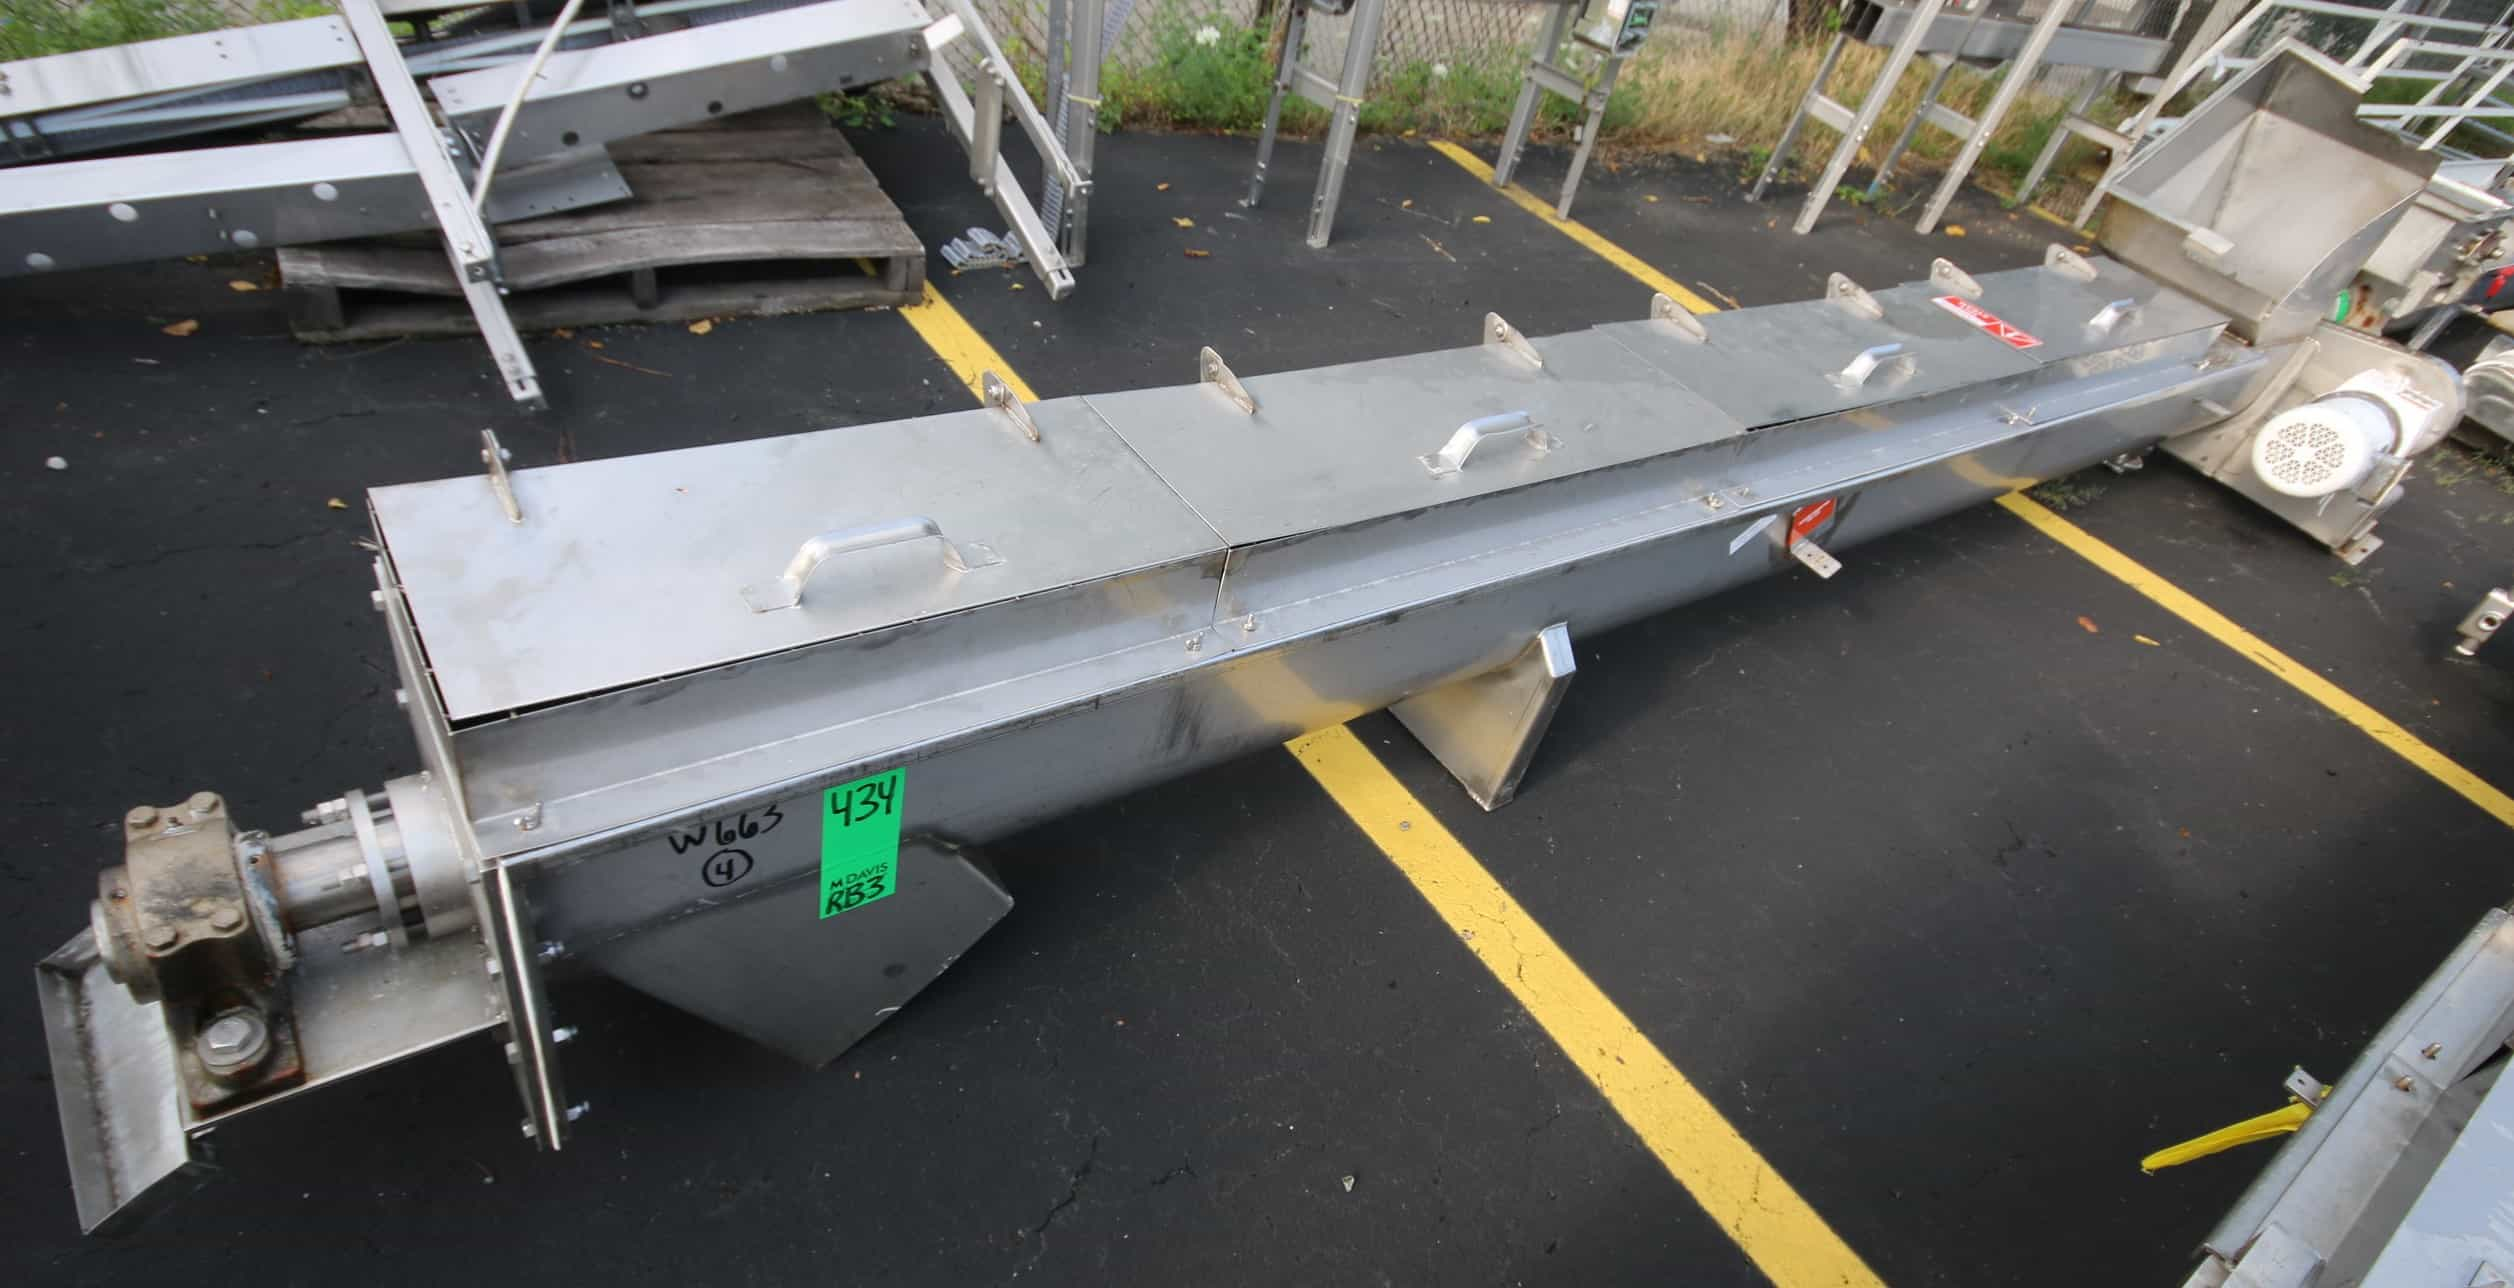 "14 ft L All S/S Power Auger Conveyor, with 12"" S/S Auger, 5 hp / 1720 rpm Drive Motor, 208/230/460 V 3 Phase, with Top Mounted Hinged Covers with Screened Guards, 15"" x 14"" Top Mounted Hopper, 13"" x 13"" Bottom Discharge"